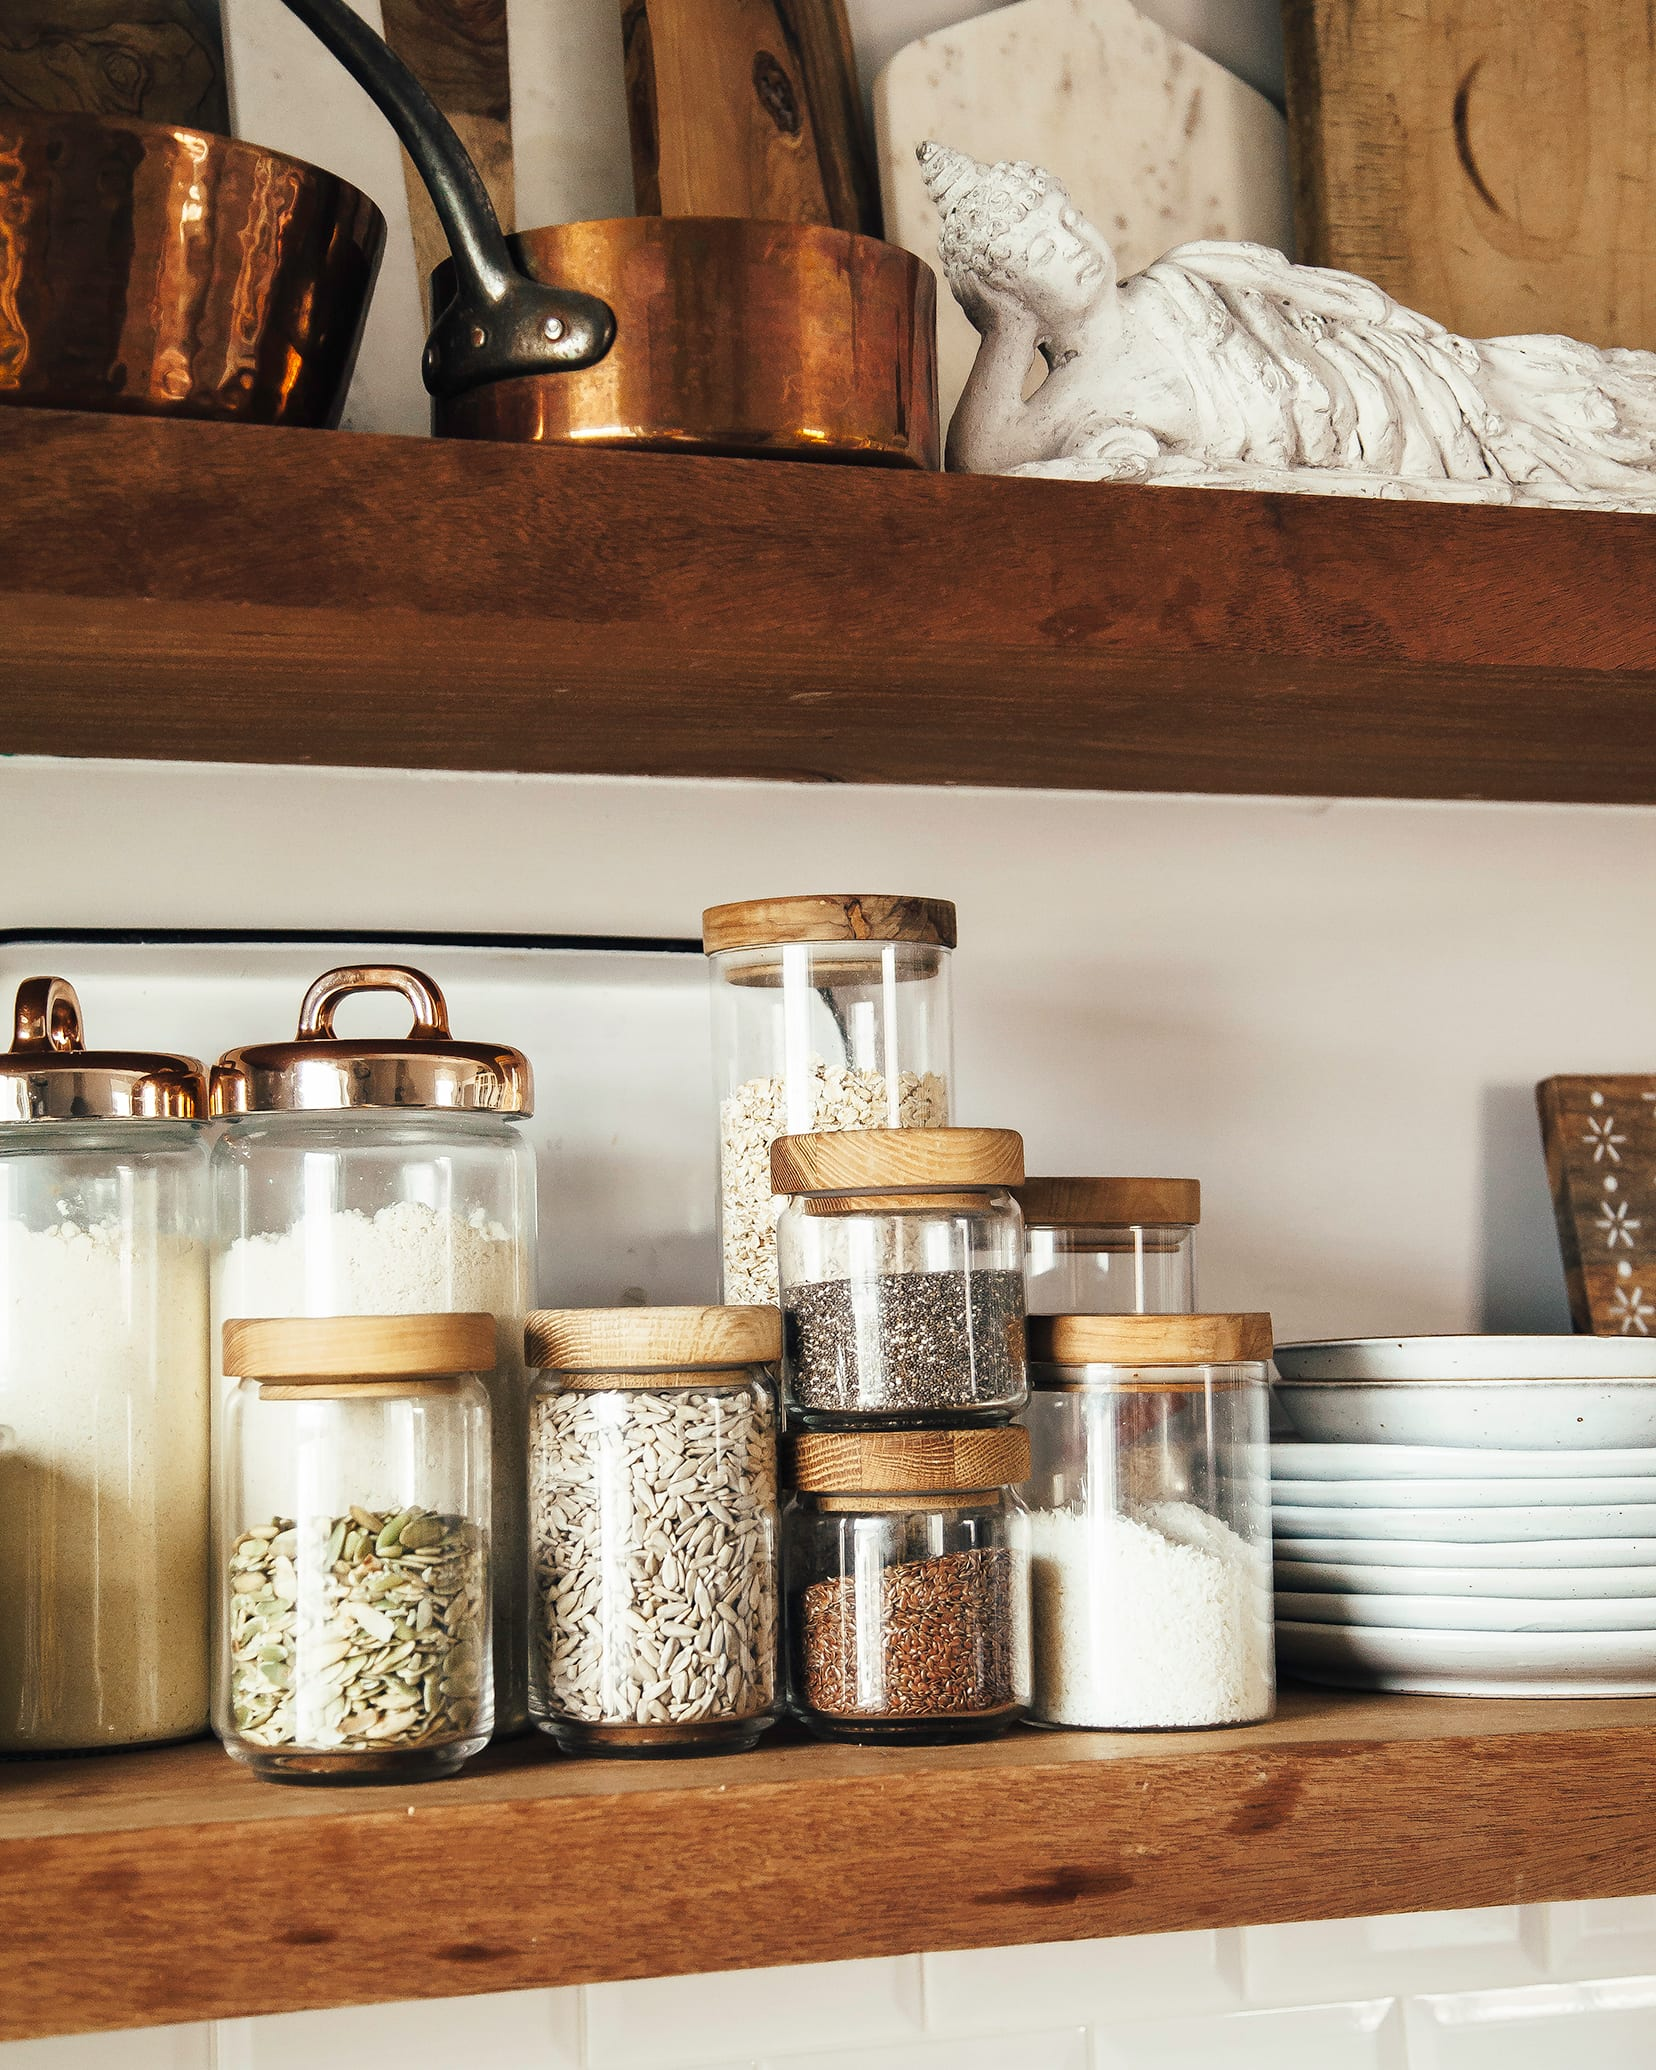 The image shows open shelving in a kitchen with a focus on storage jars filled with pantry staples like oats, seeds, and shredded coconut.